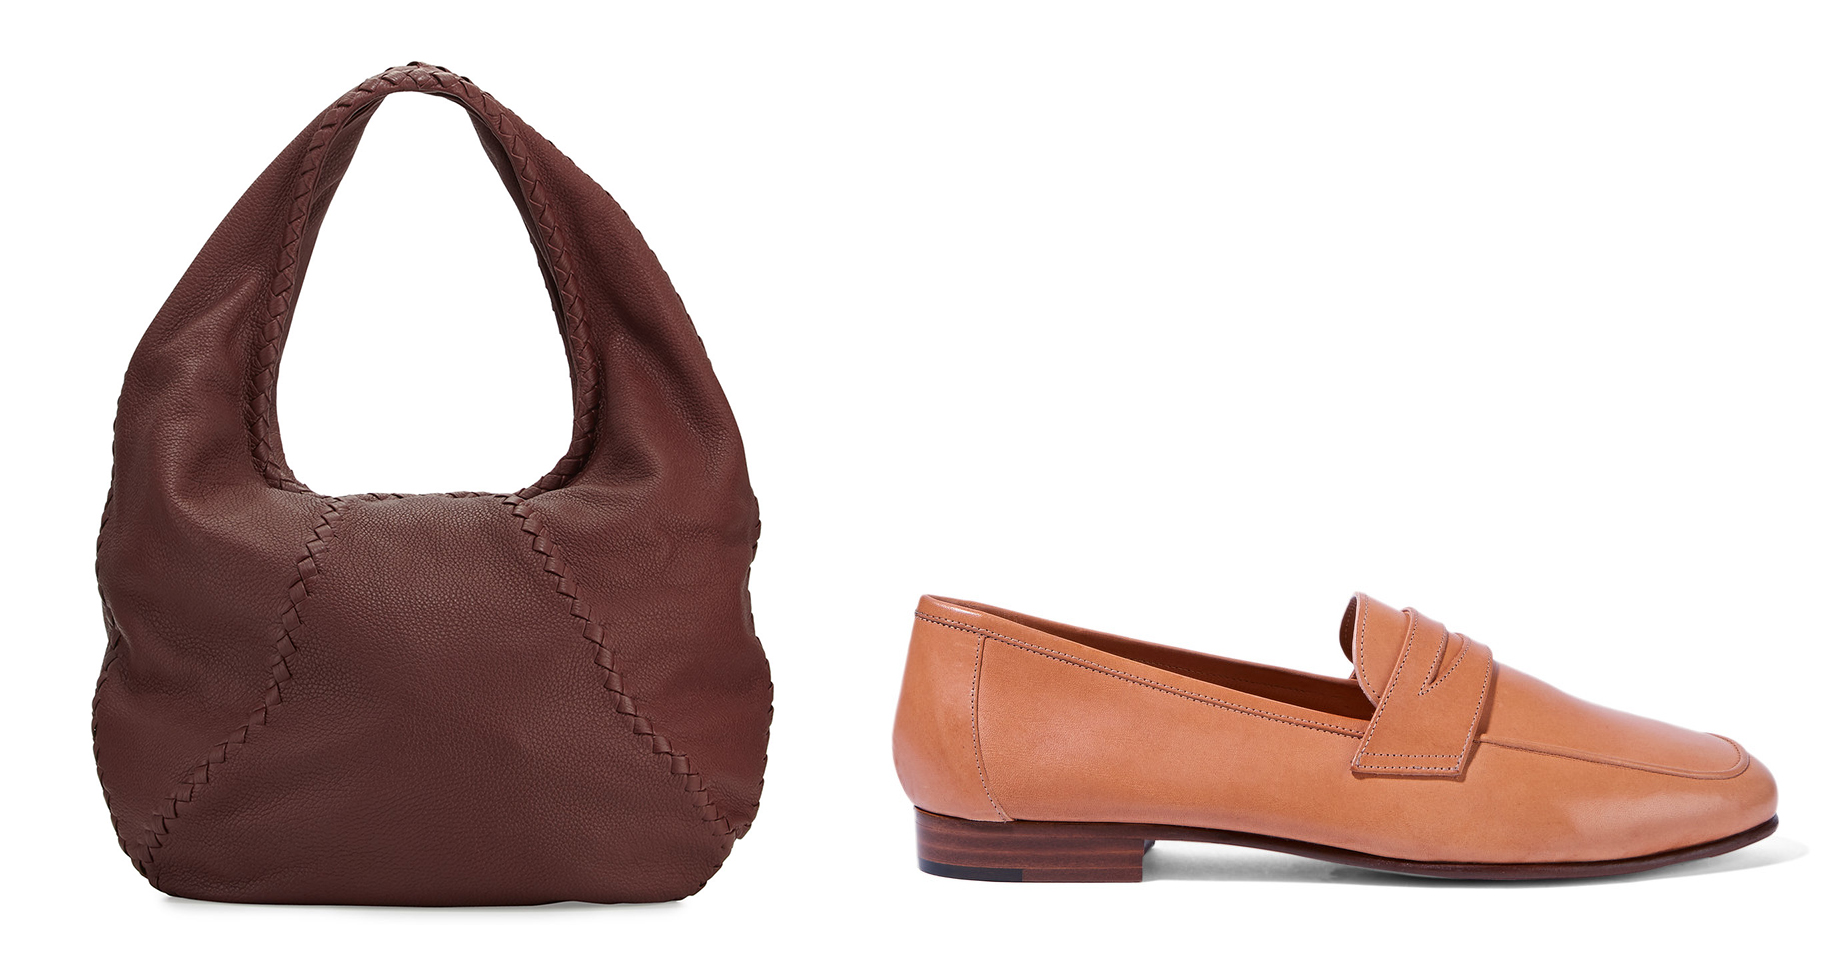 Bottega Veneta Cervo Large Leather Hobo Bag $1,780 via Neiman Marcus  Mansur Gavriel Leather Loafers $425 via Net-a-Porter